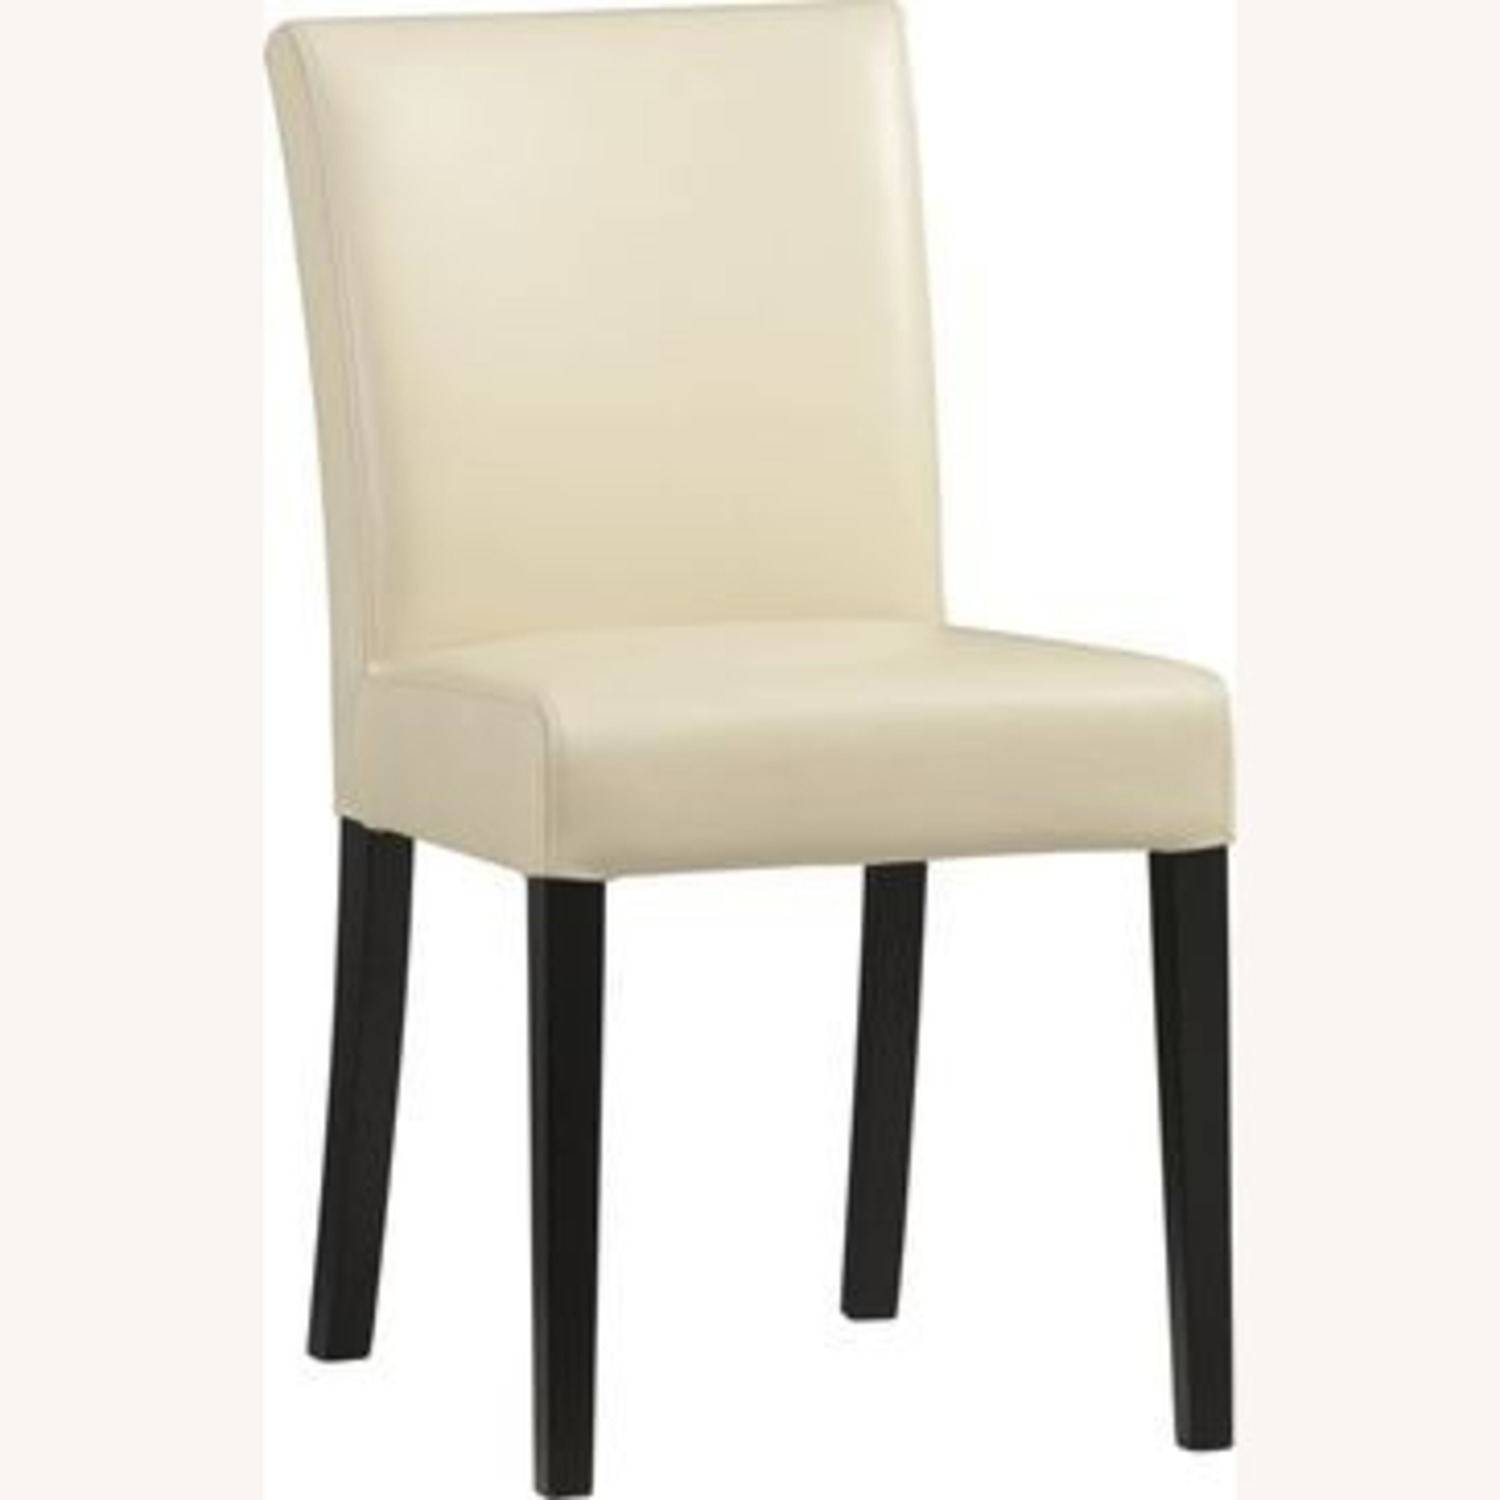 Crate & Barrel Lowe Ivory Leather Dining Chair - image-1